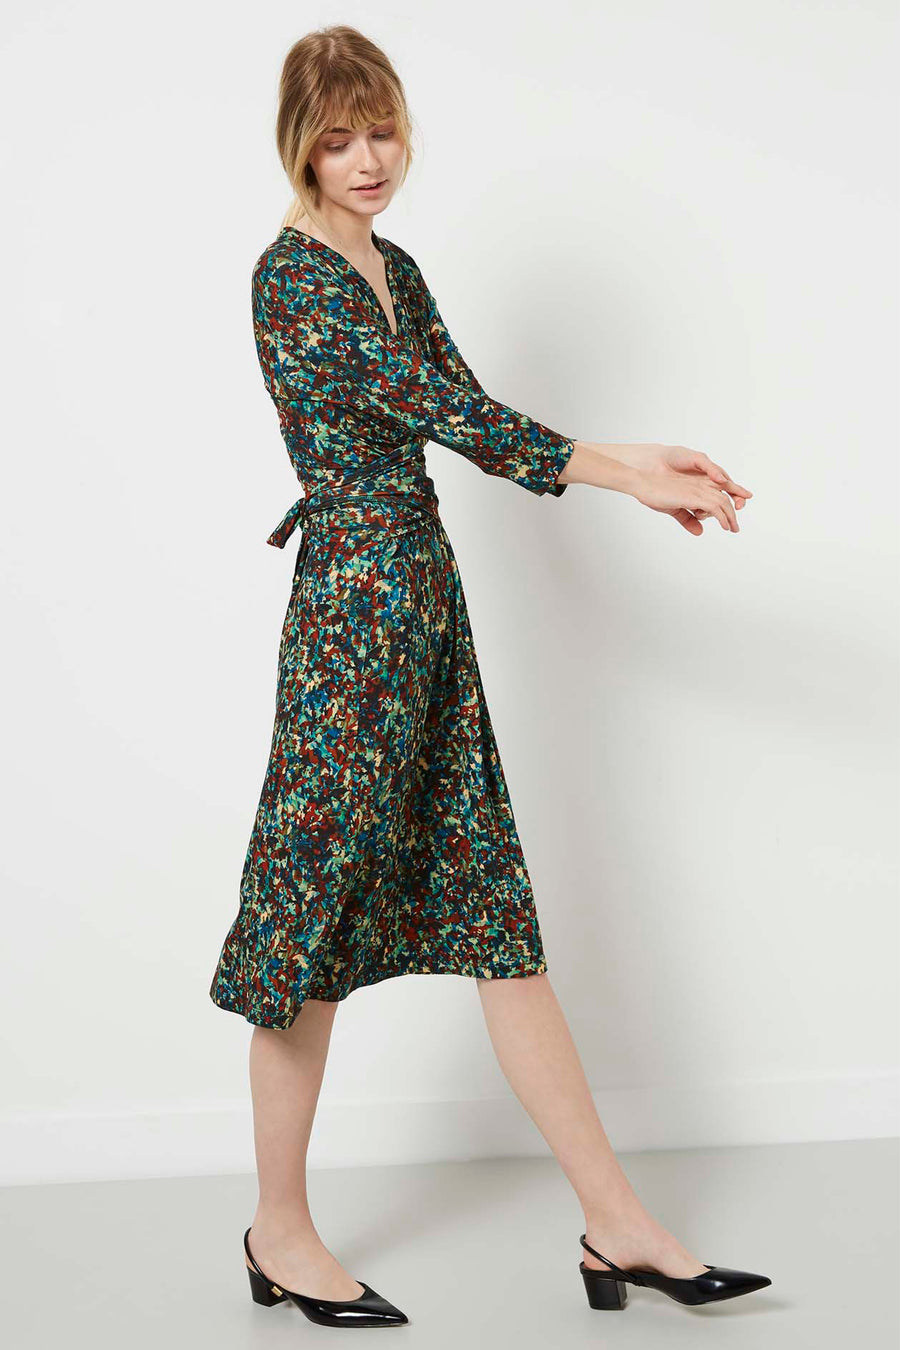 Radley Monet Print Dress